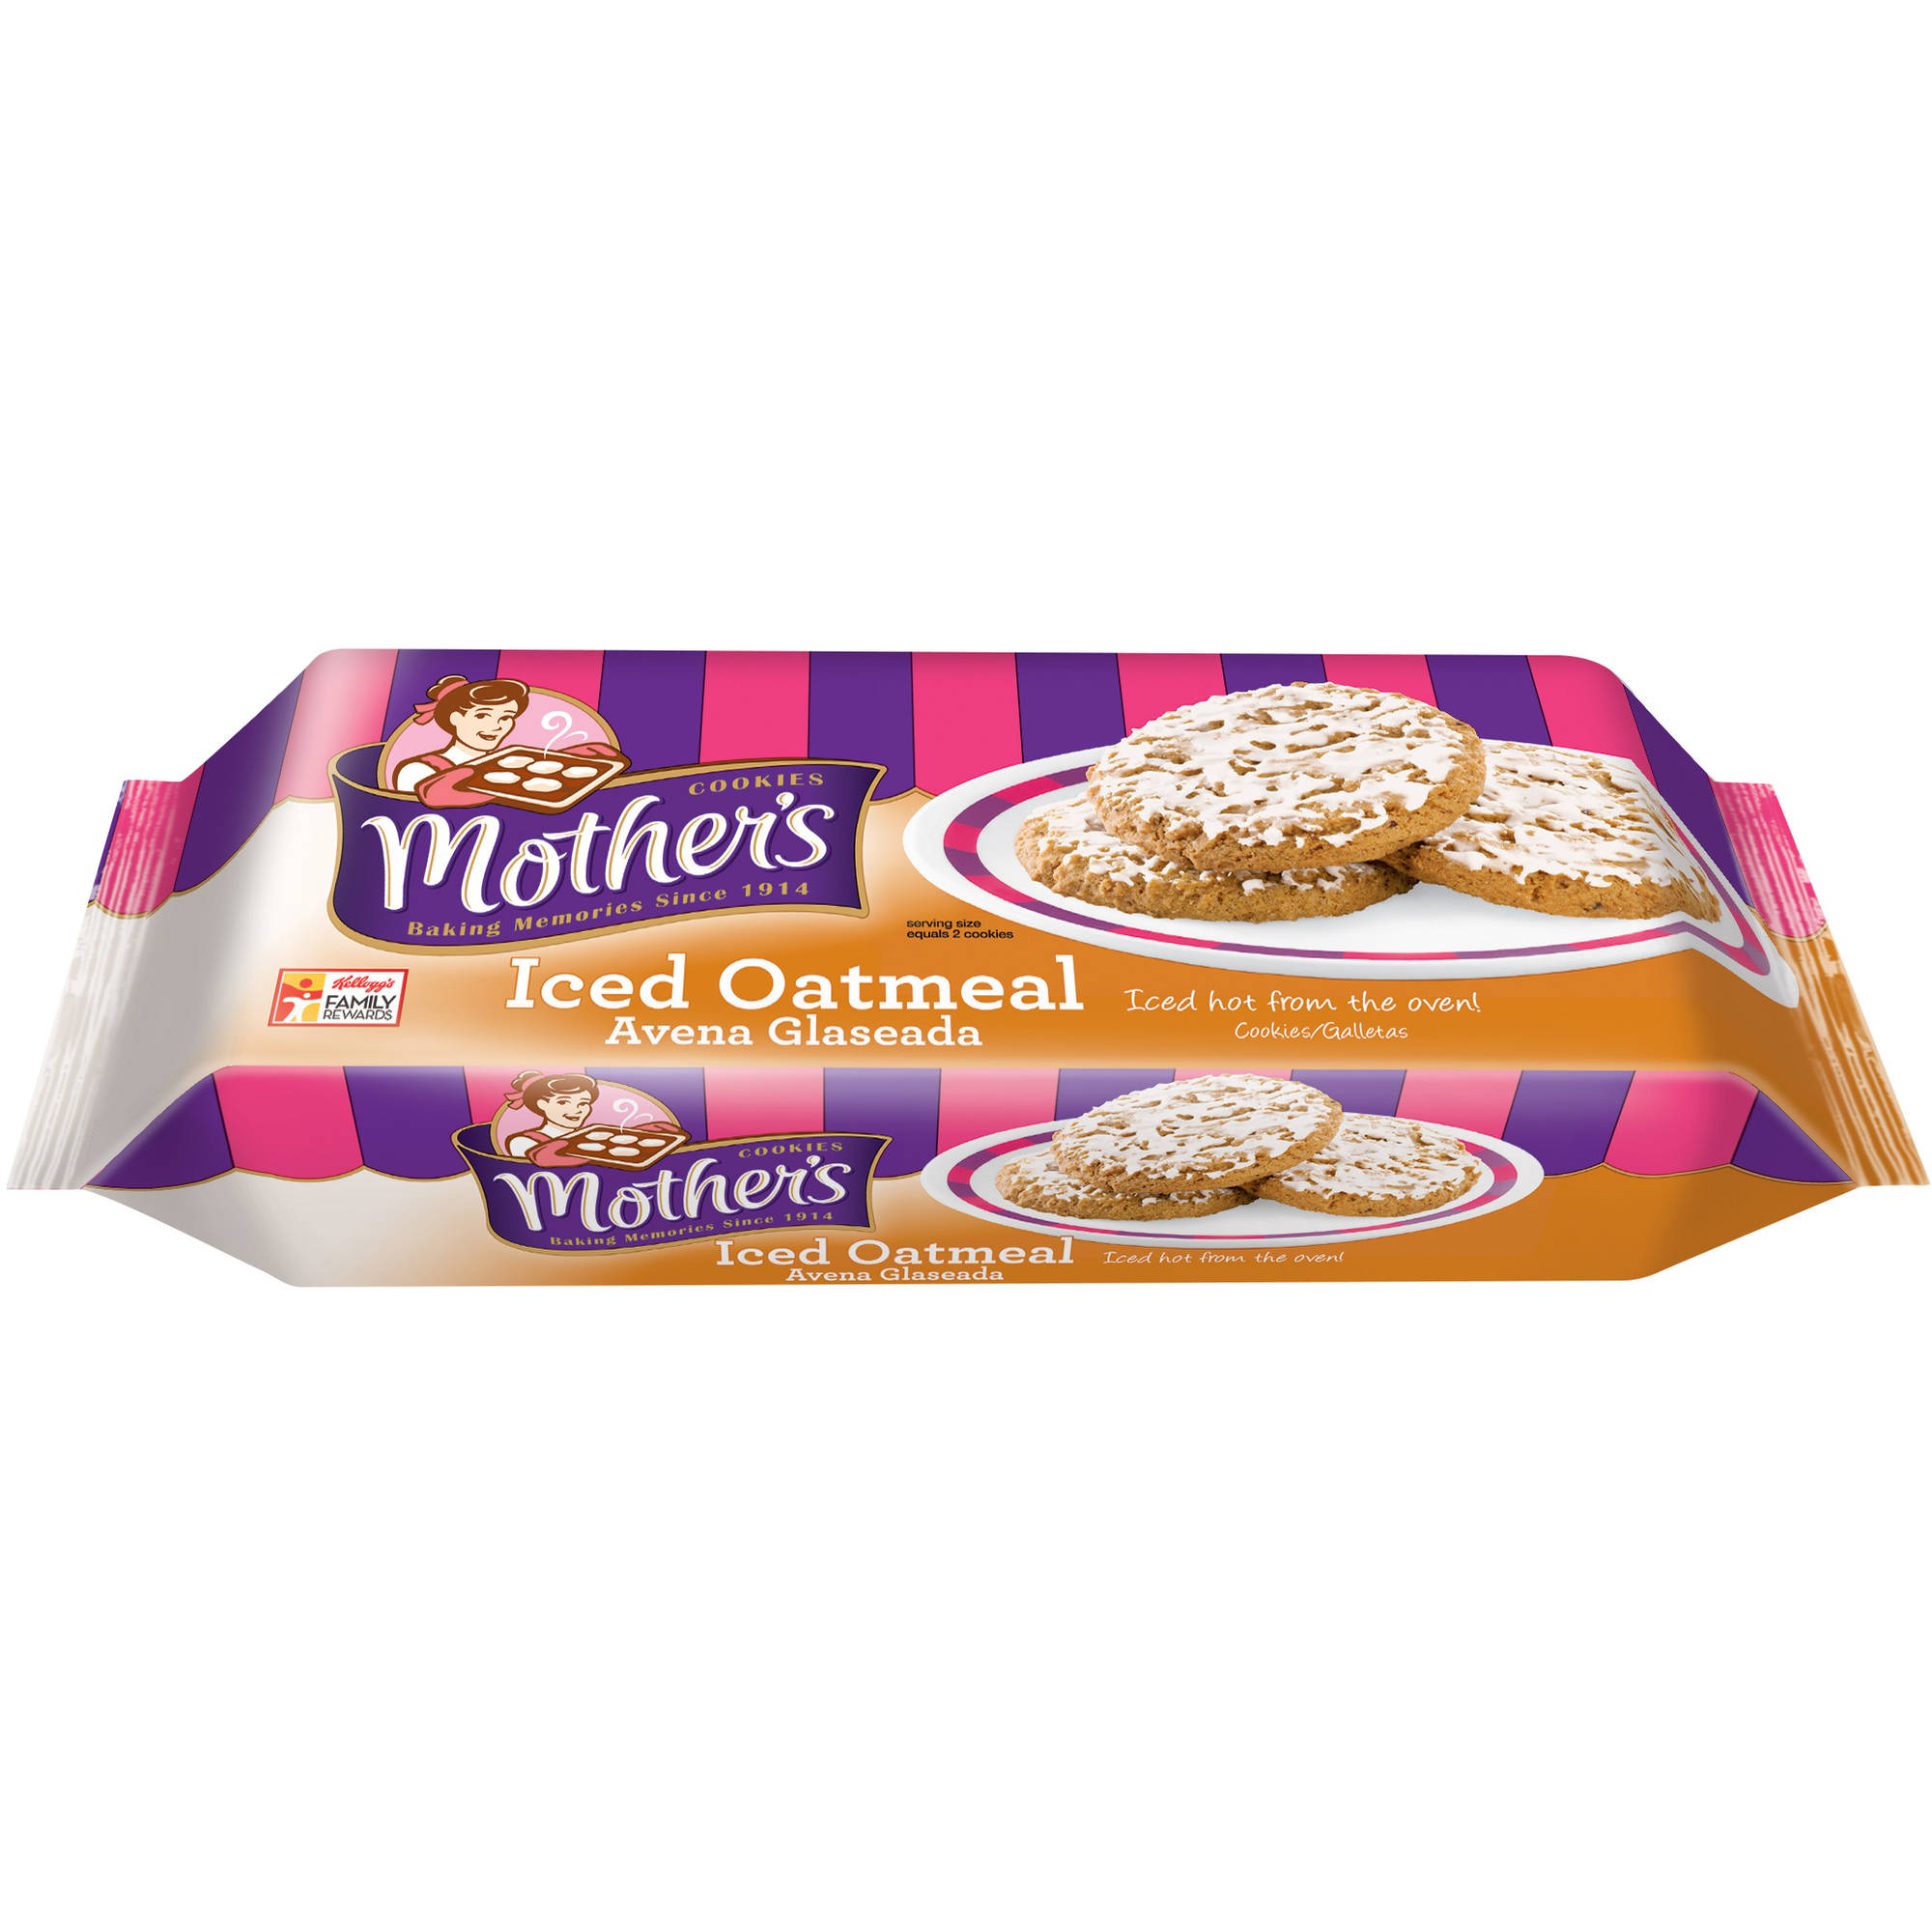 Generic Mother's Cookies Iced Oatmeal Baked With Pride, 13.25 Oz